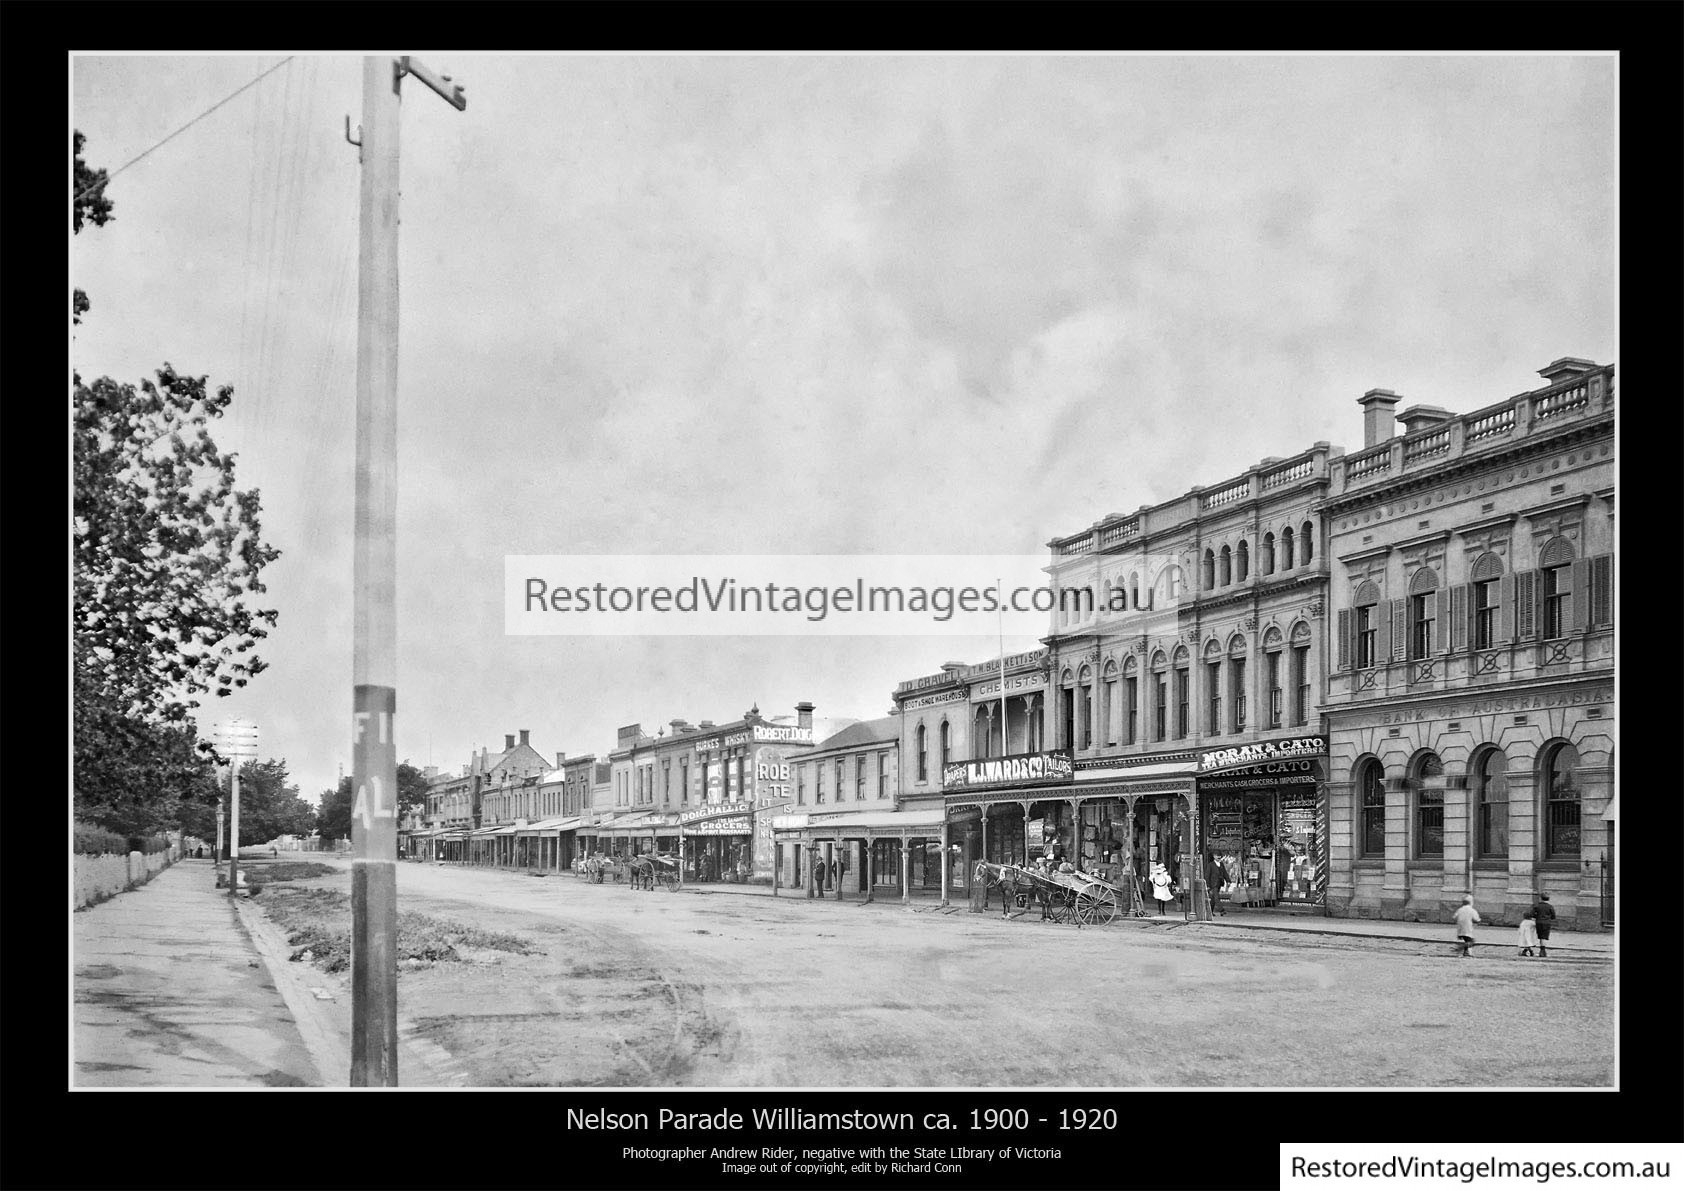 Nelson Parade Looking South – Williamstown 1910-20